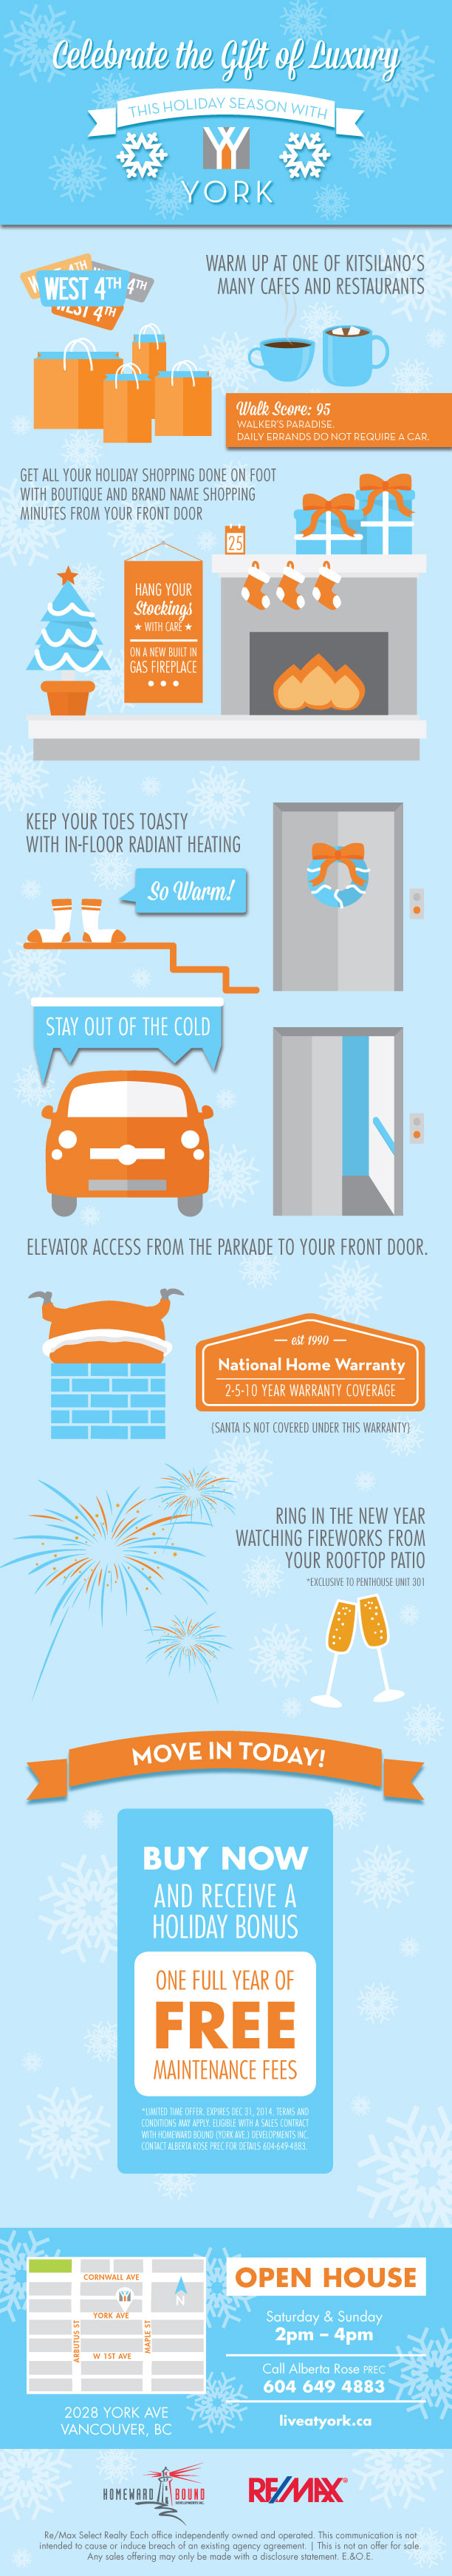 York_Holiday_Infographic